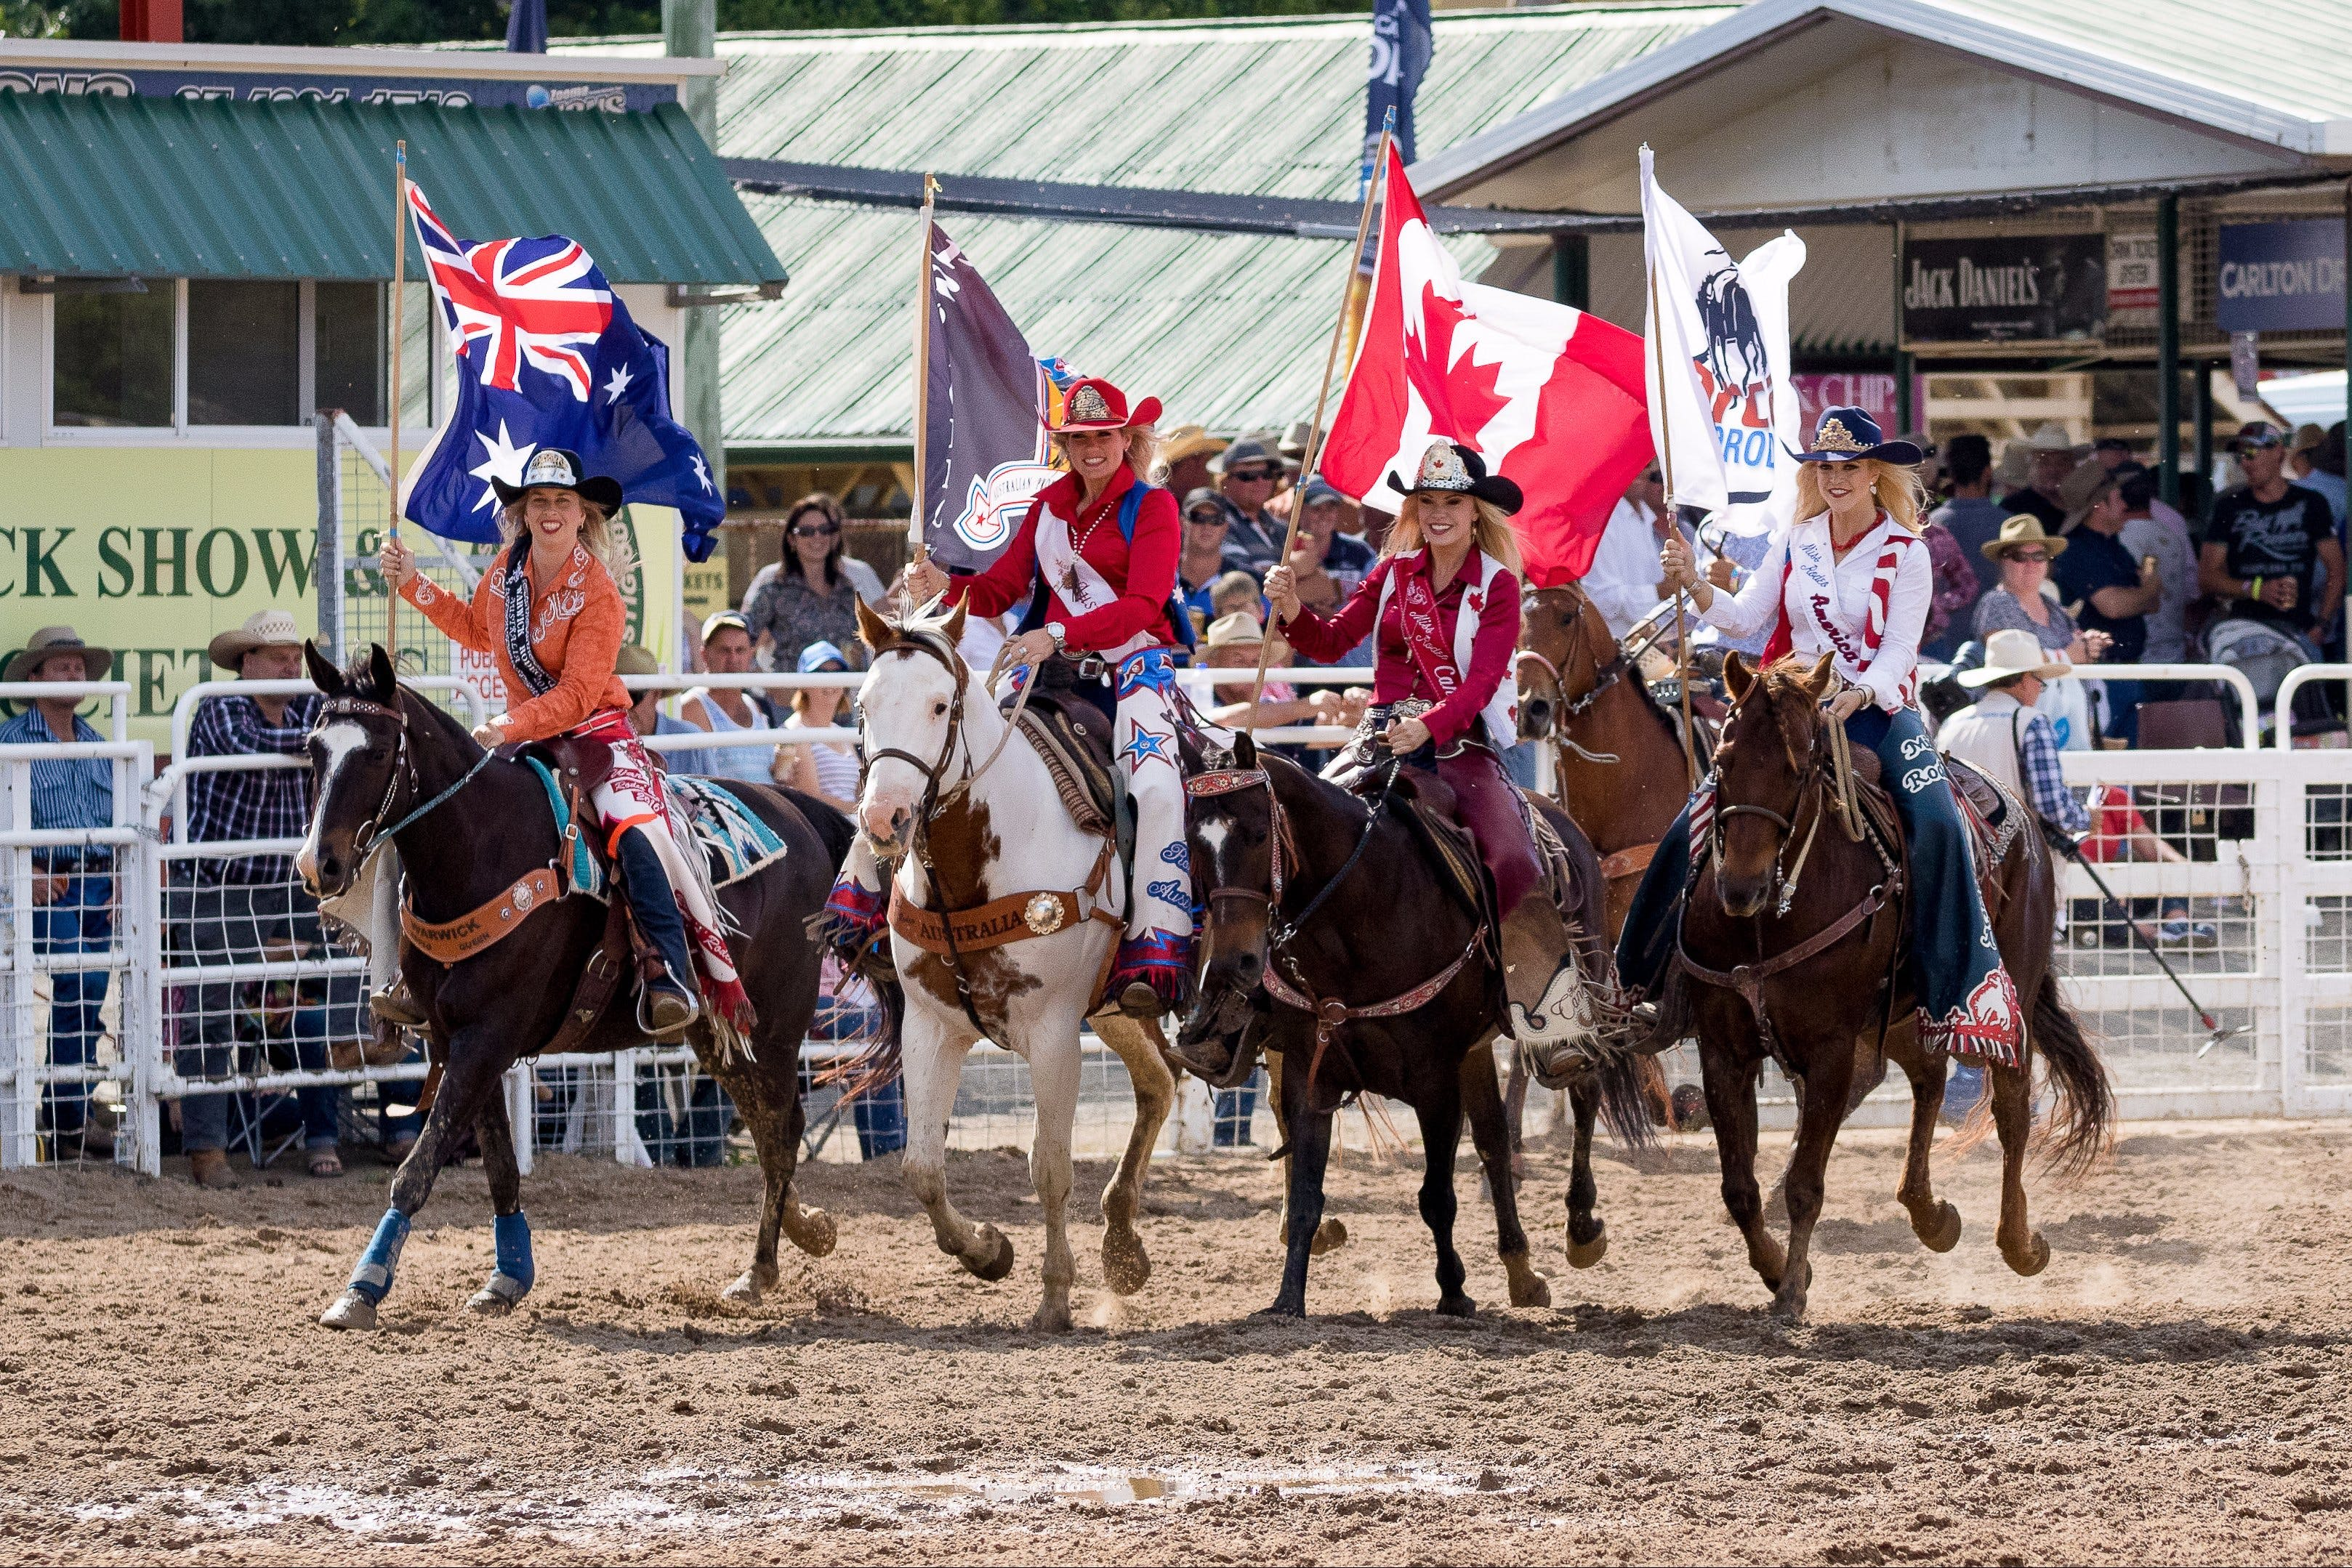 Warwick Rodeo National APRA National Finals and Warwick Gold Cup Campdraft - WA Accommodation